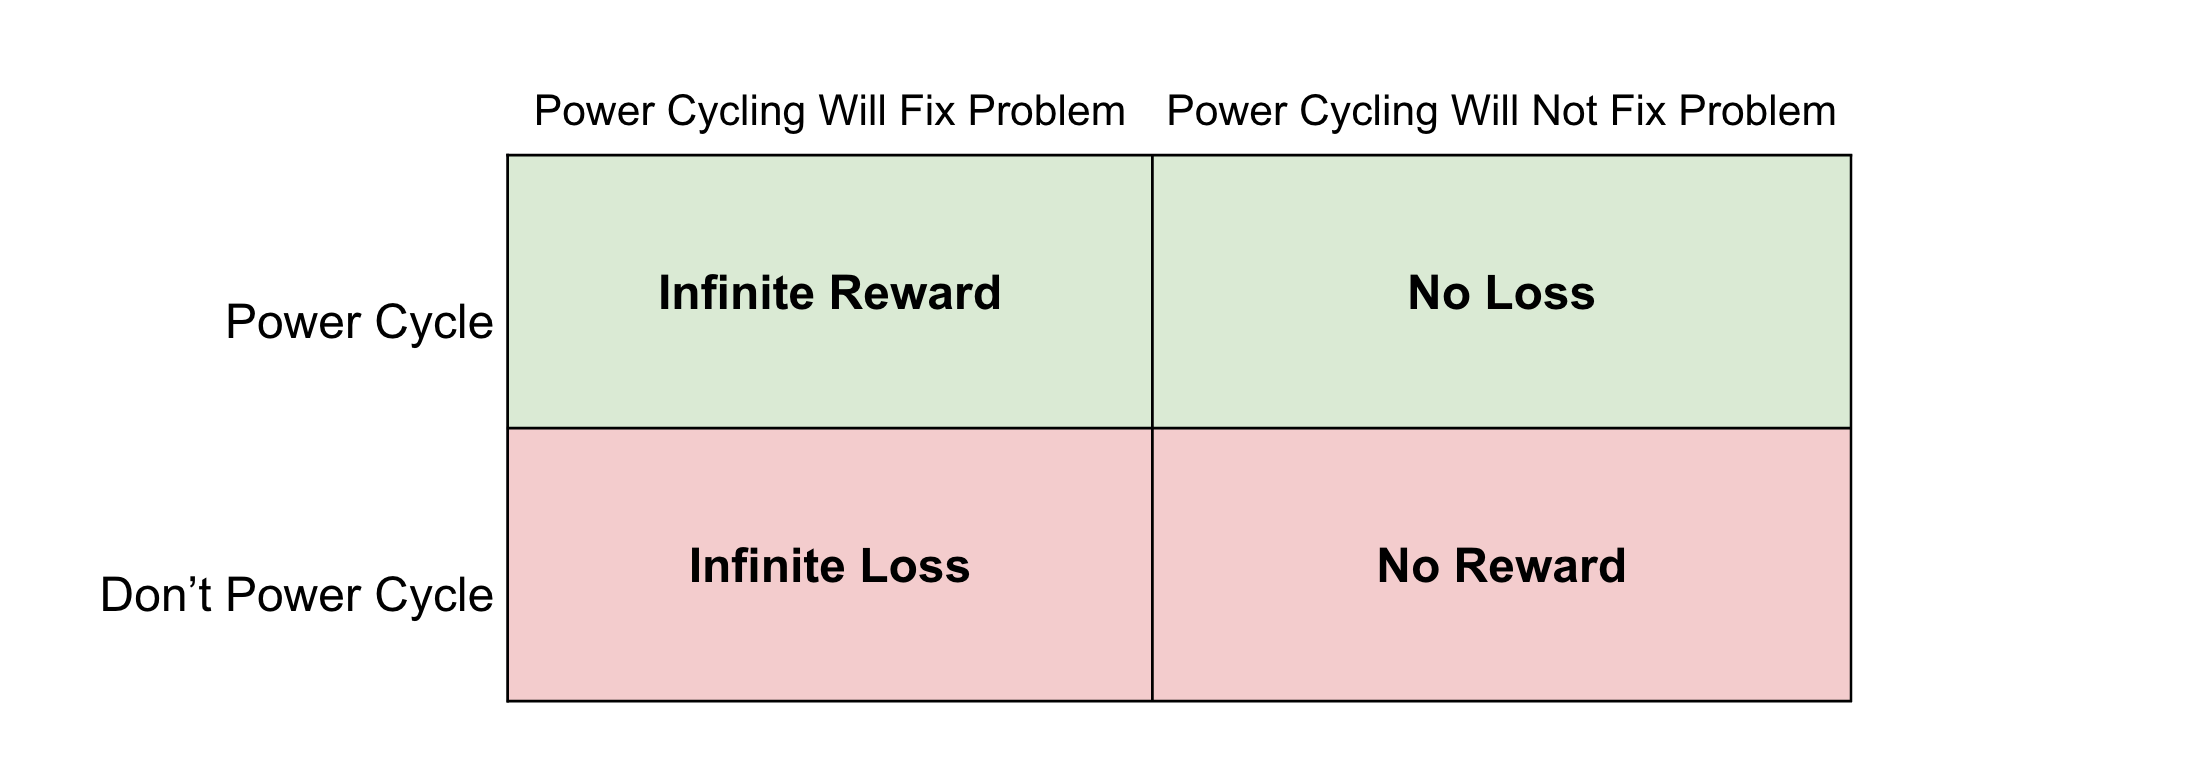 4 quadrant diagram on expected value of power cycling